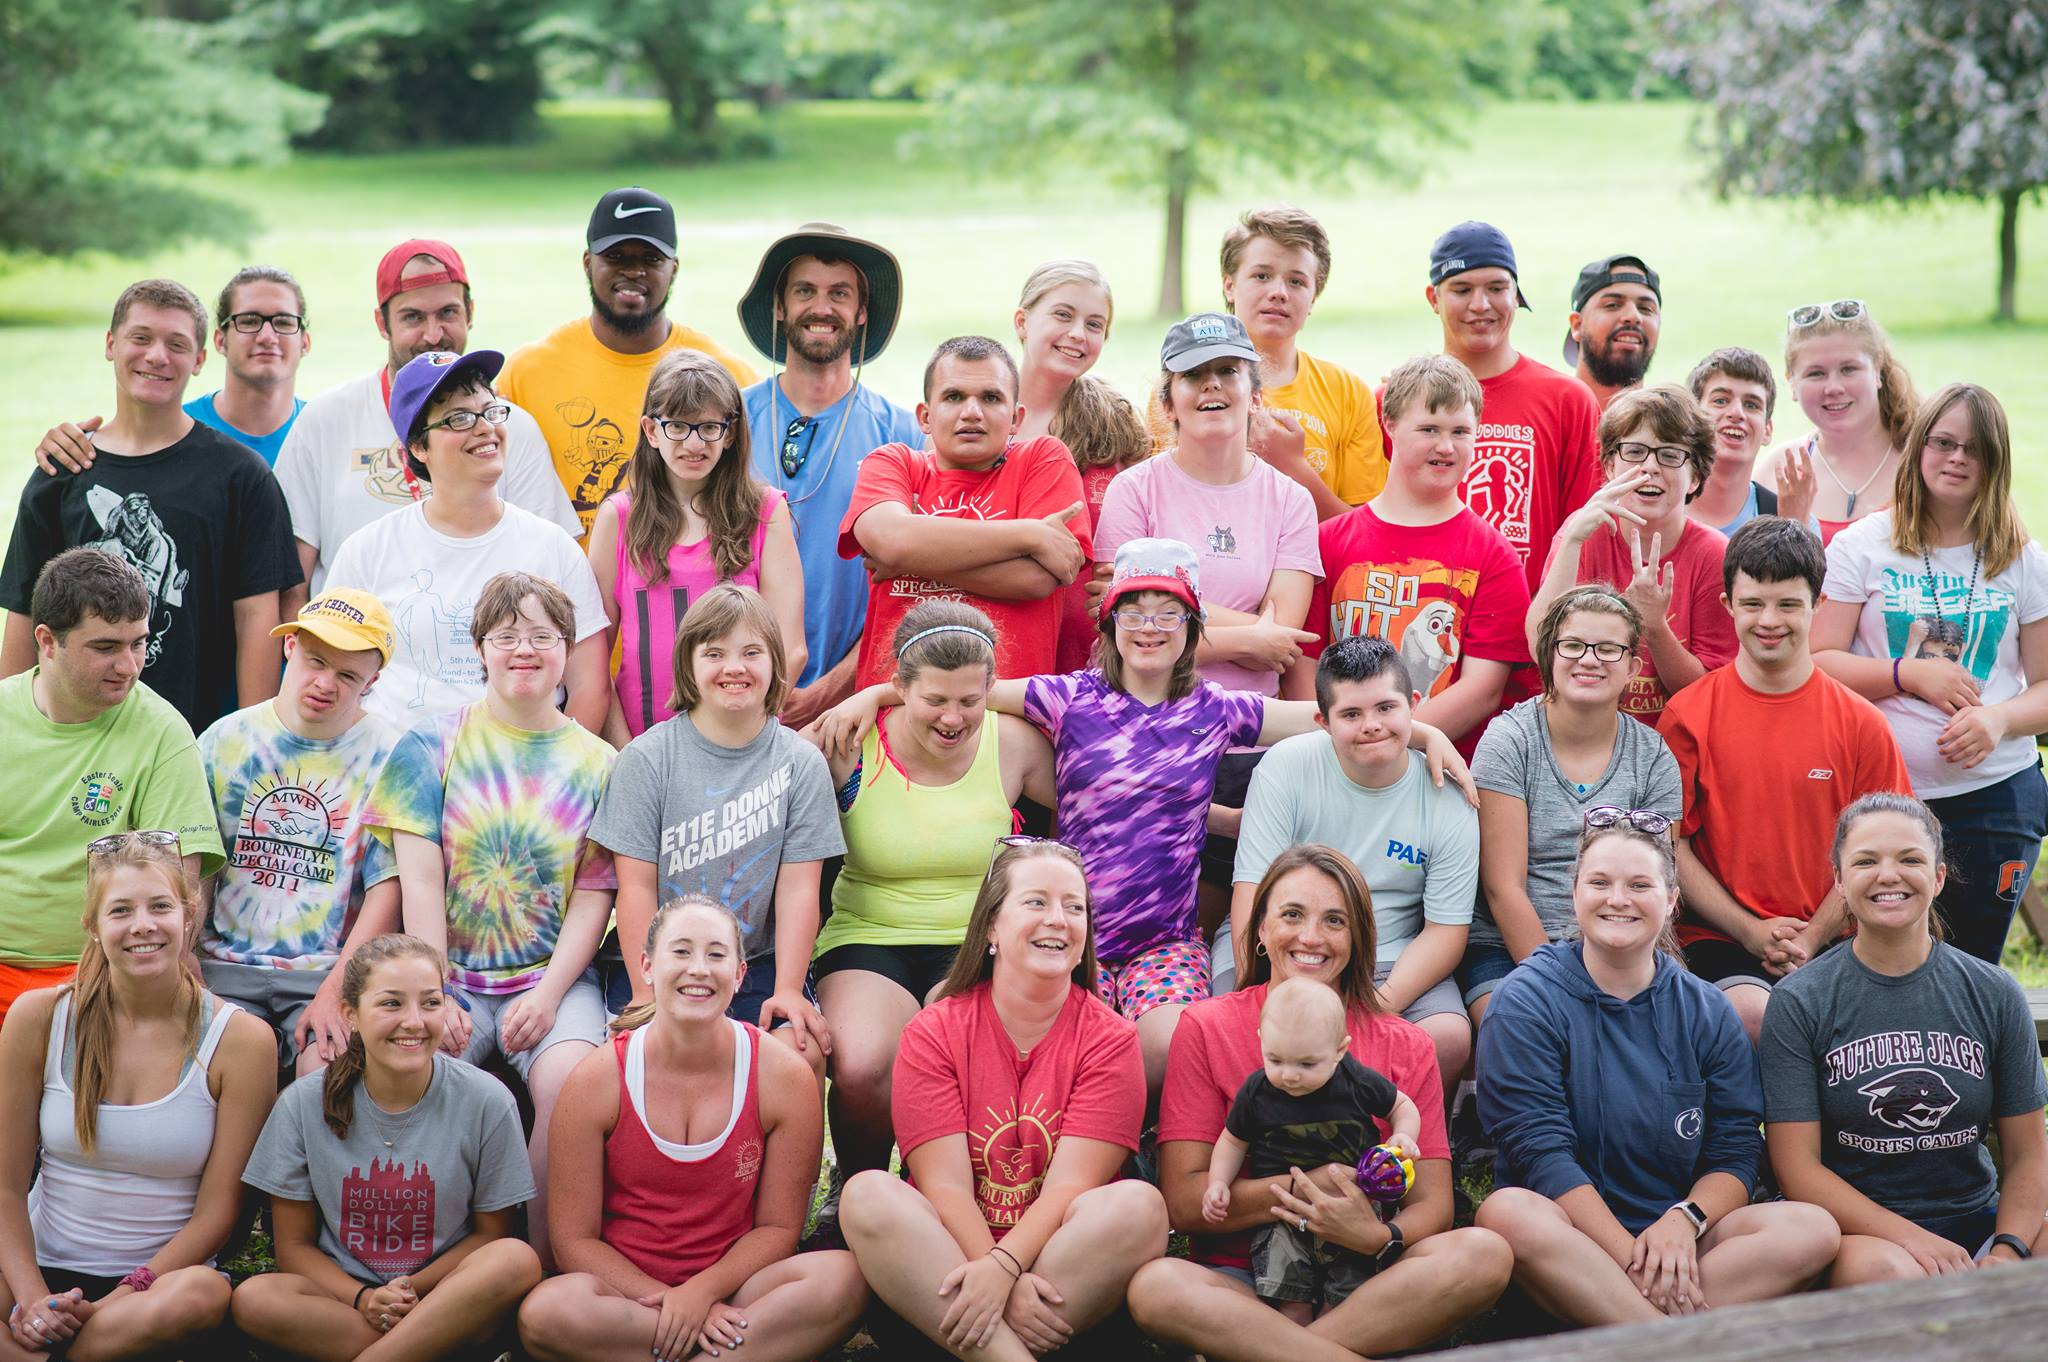 Bournelyf Special Camp in West Chester Has Been Serving the Community Since 1980